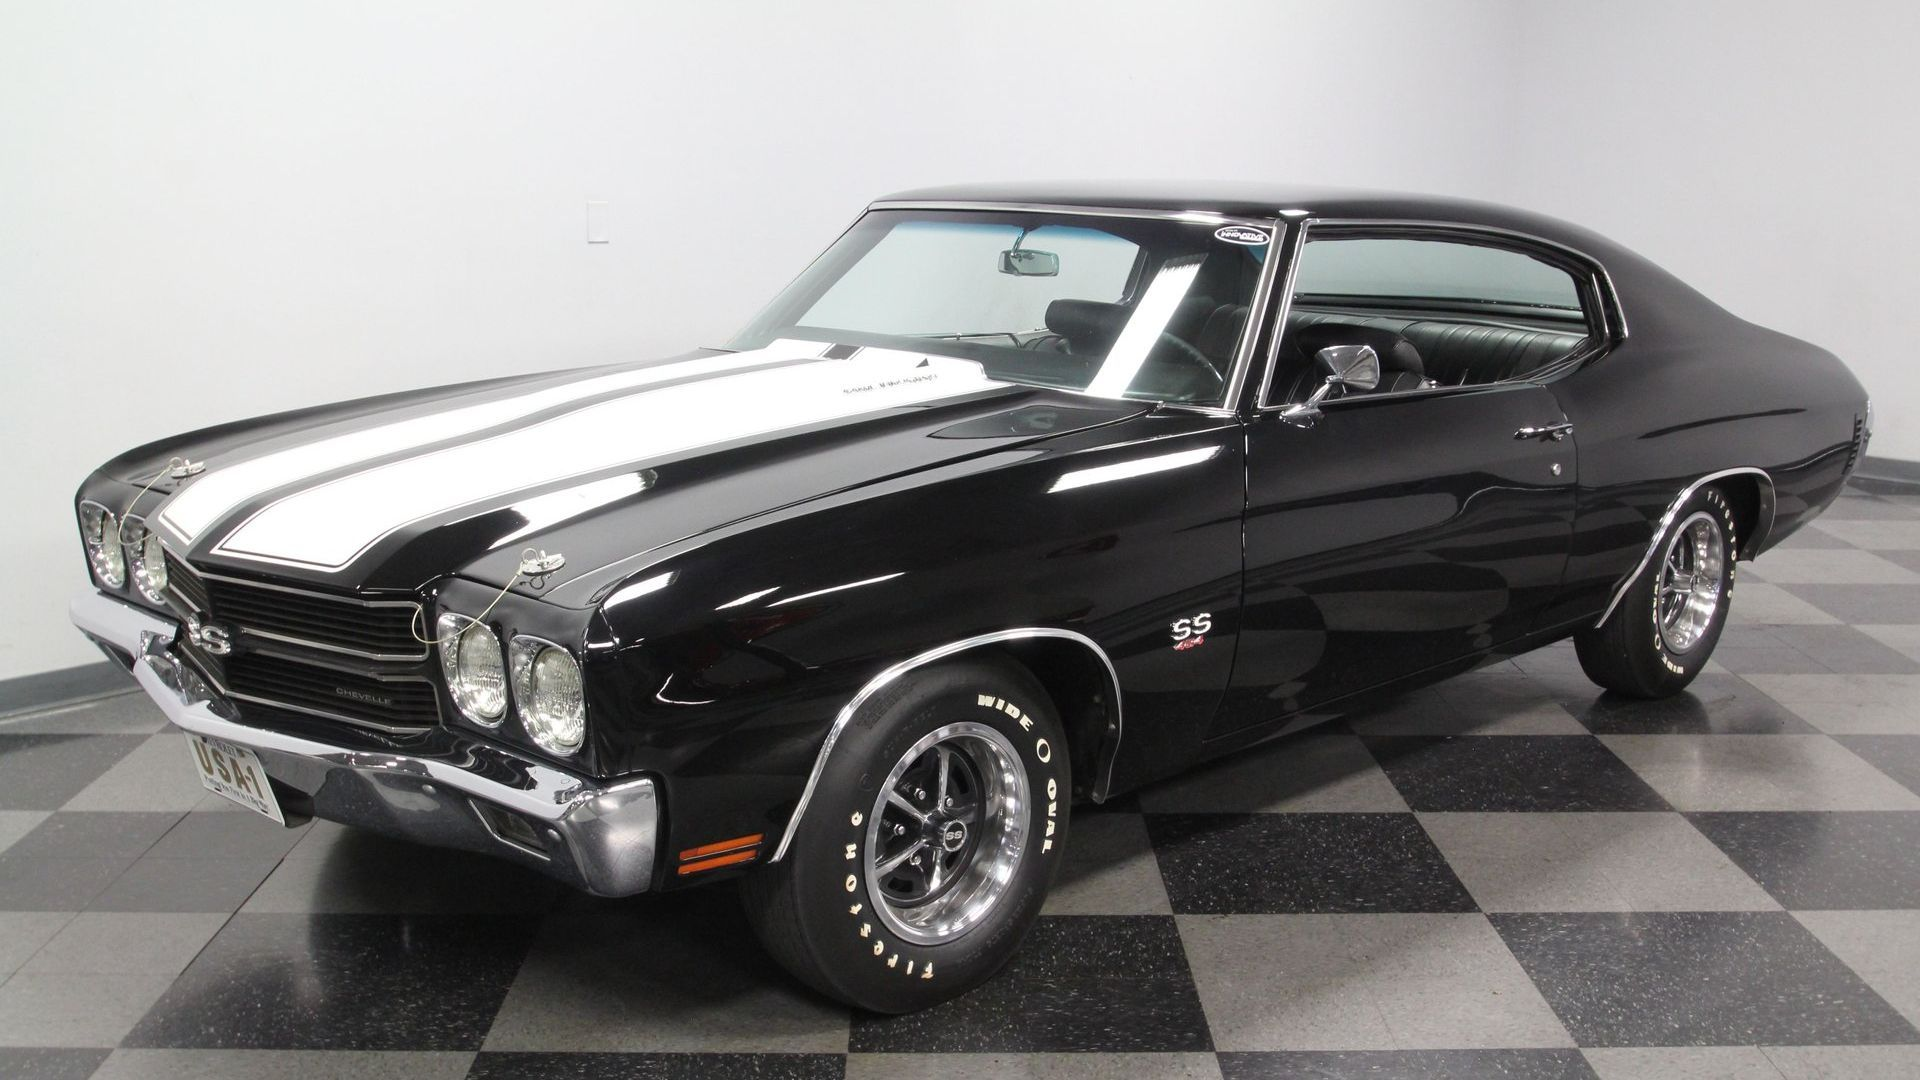 Jaw Dropping 1970 Chevelle Ss 454 Is Ready For A New Owner